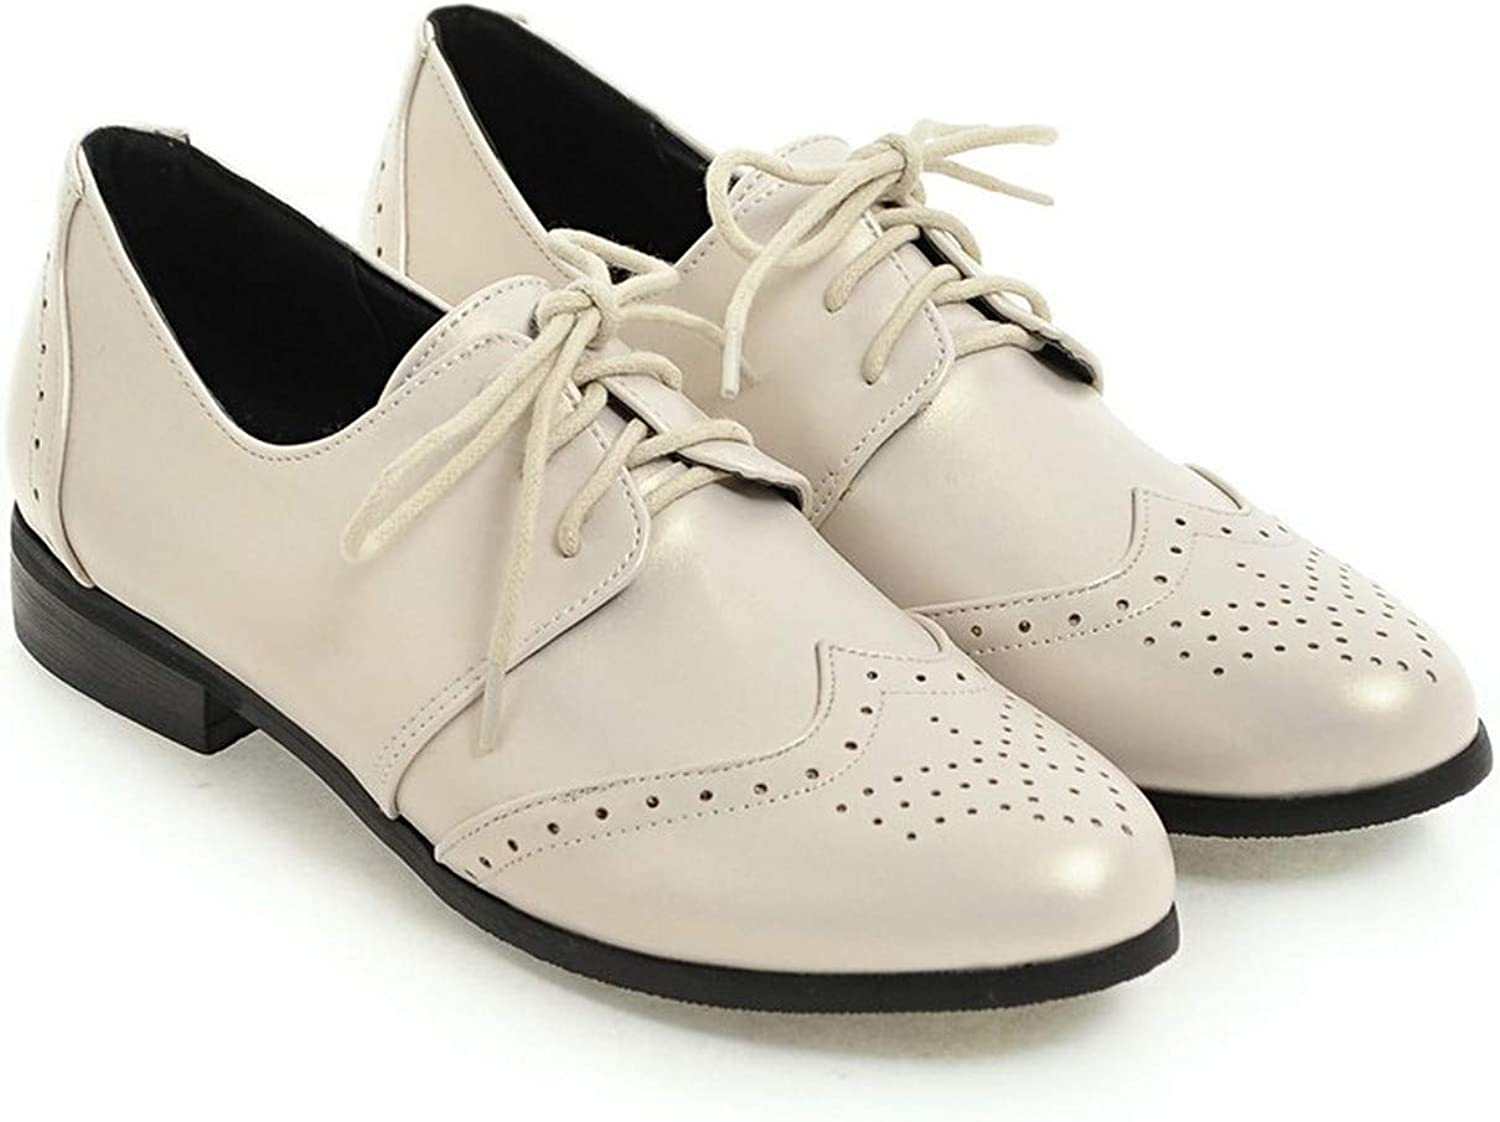 colorful-space Women Oxfords Flats shoes Lace Up Pointed Toe Brand Fashion Causal Brogue shoes Women Beige Black Large Size 11 12 45 46,White,12